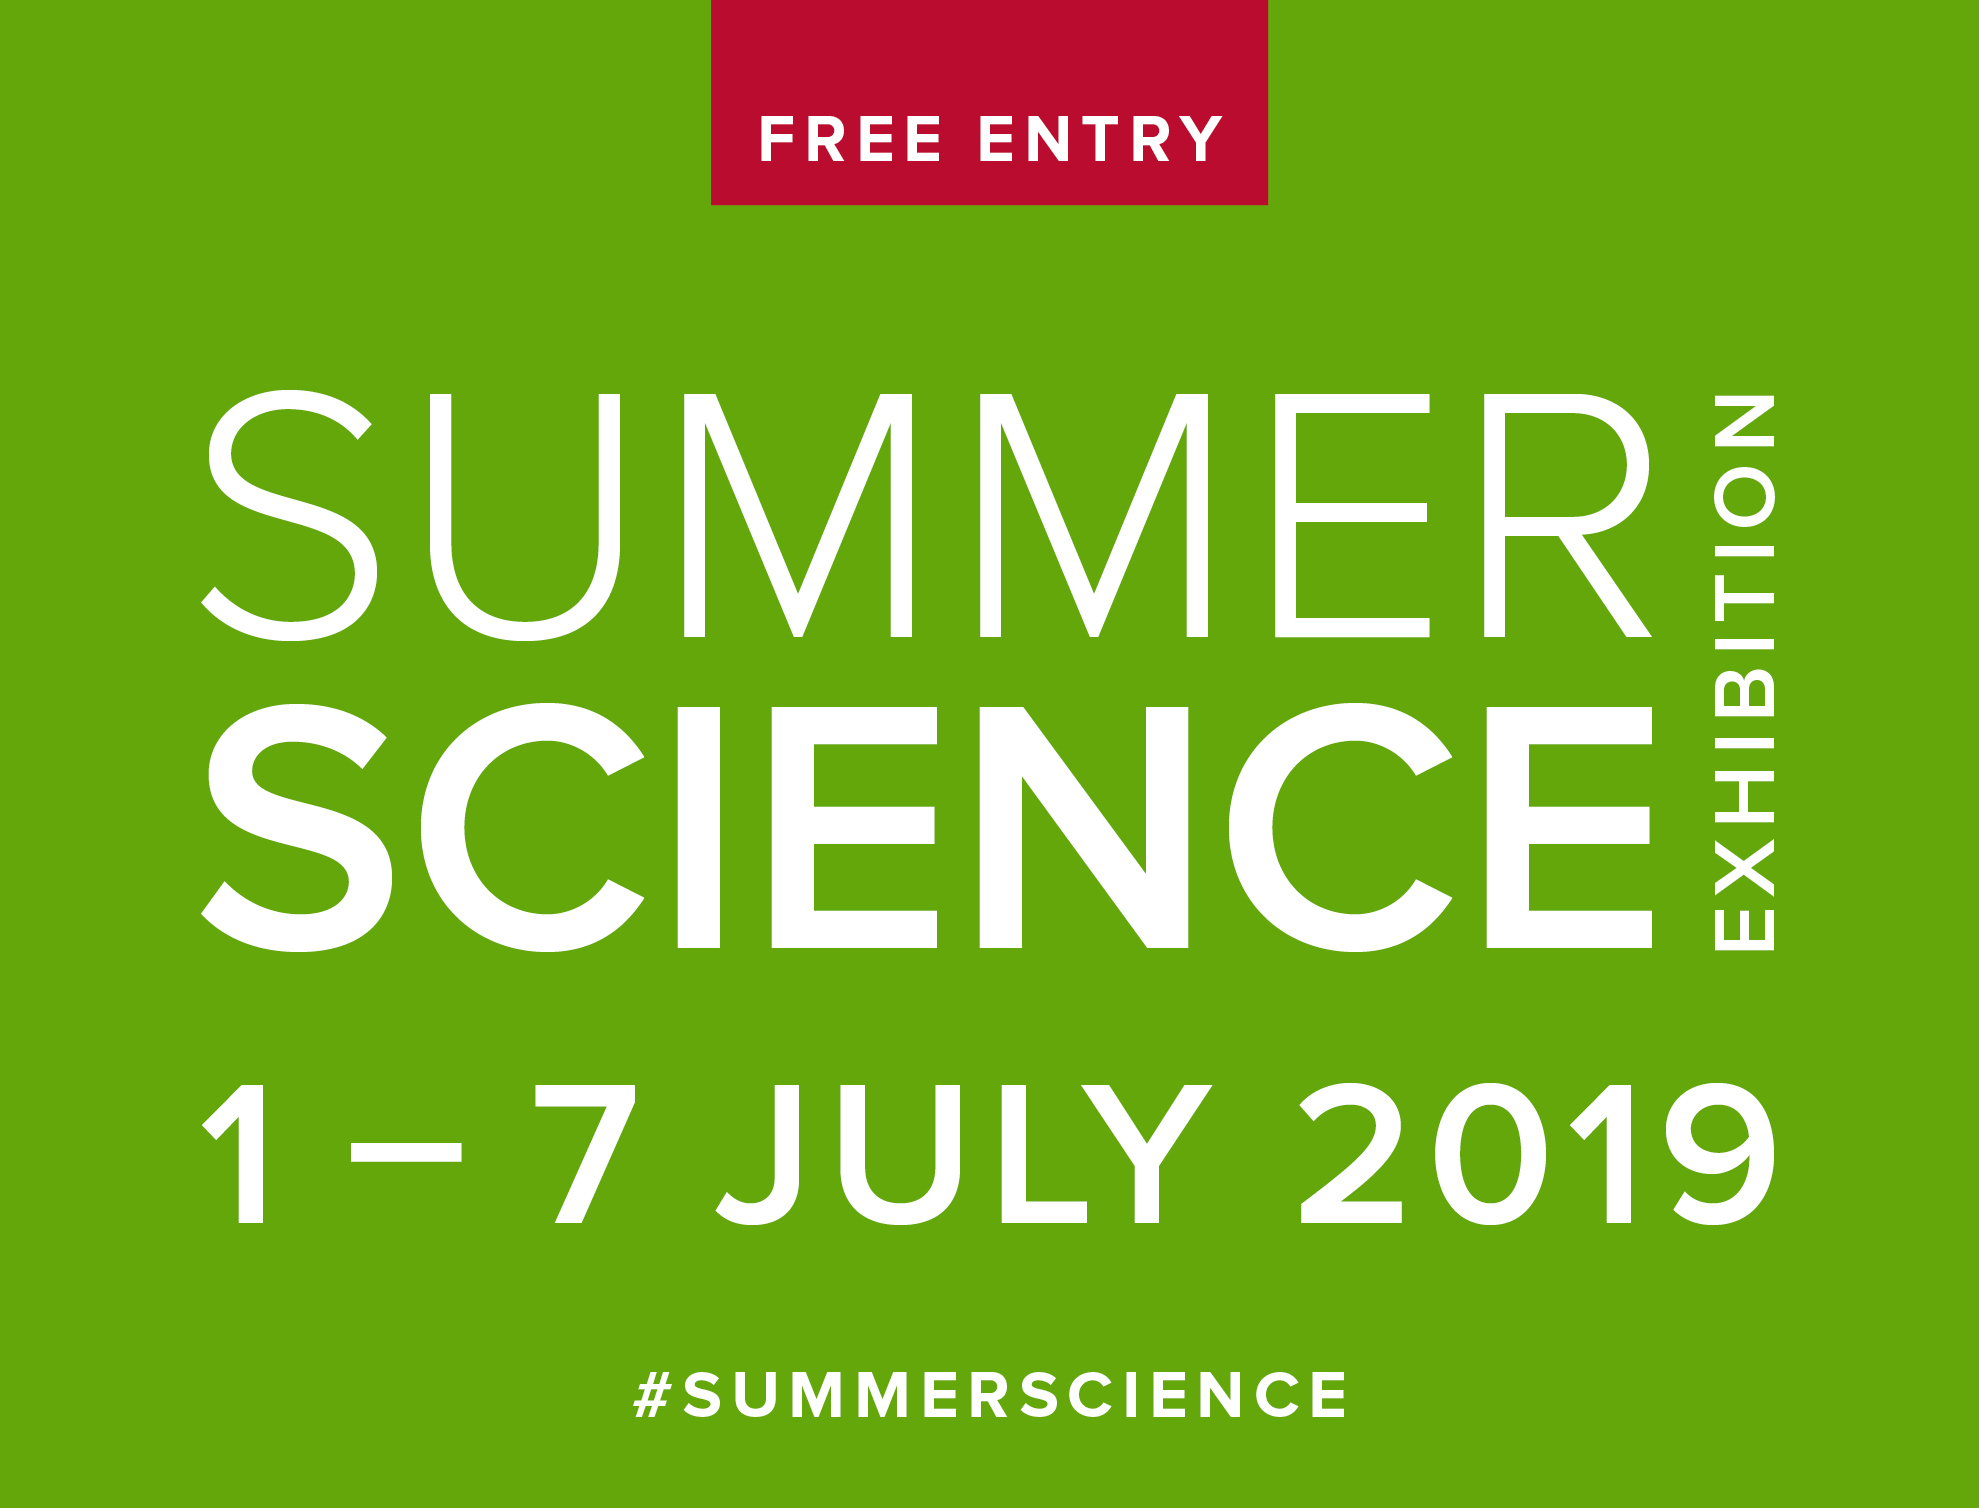 Summer Science Exhibition. 1-7 July 2019